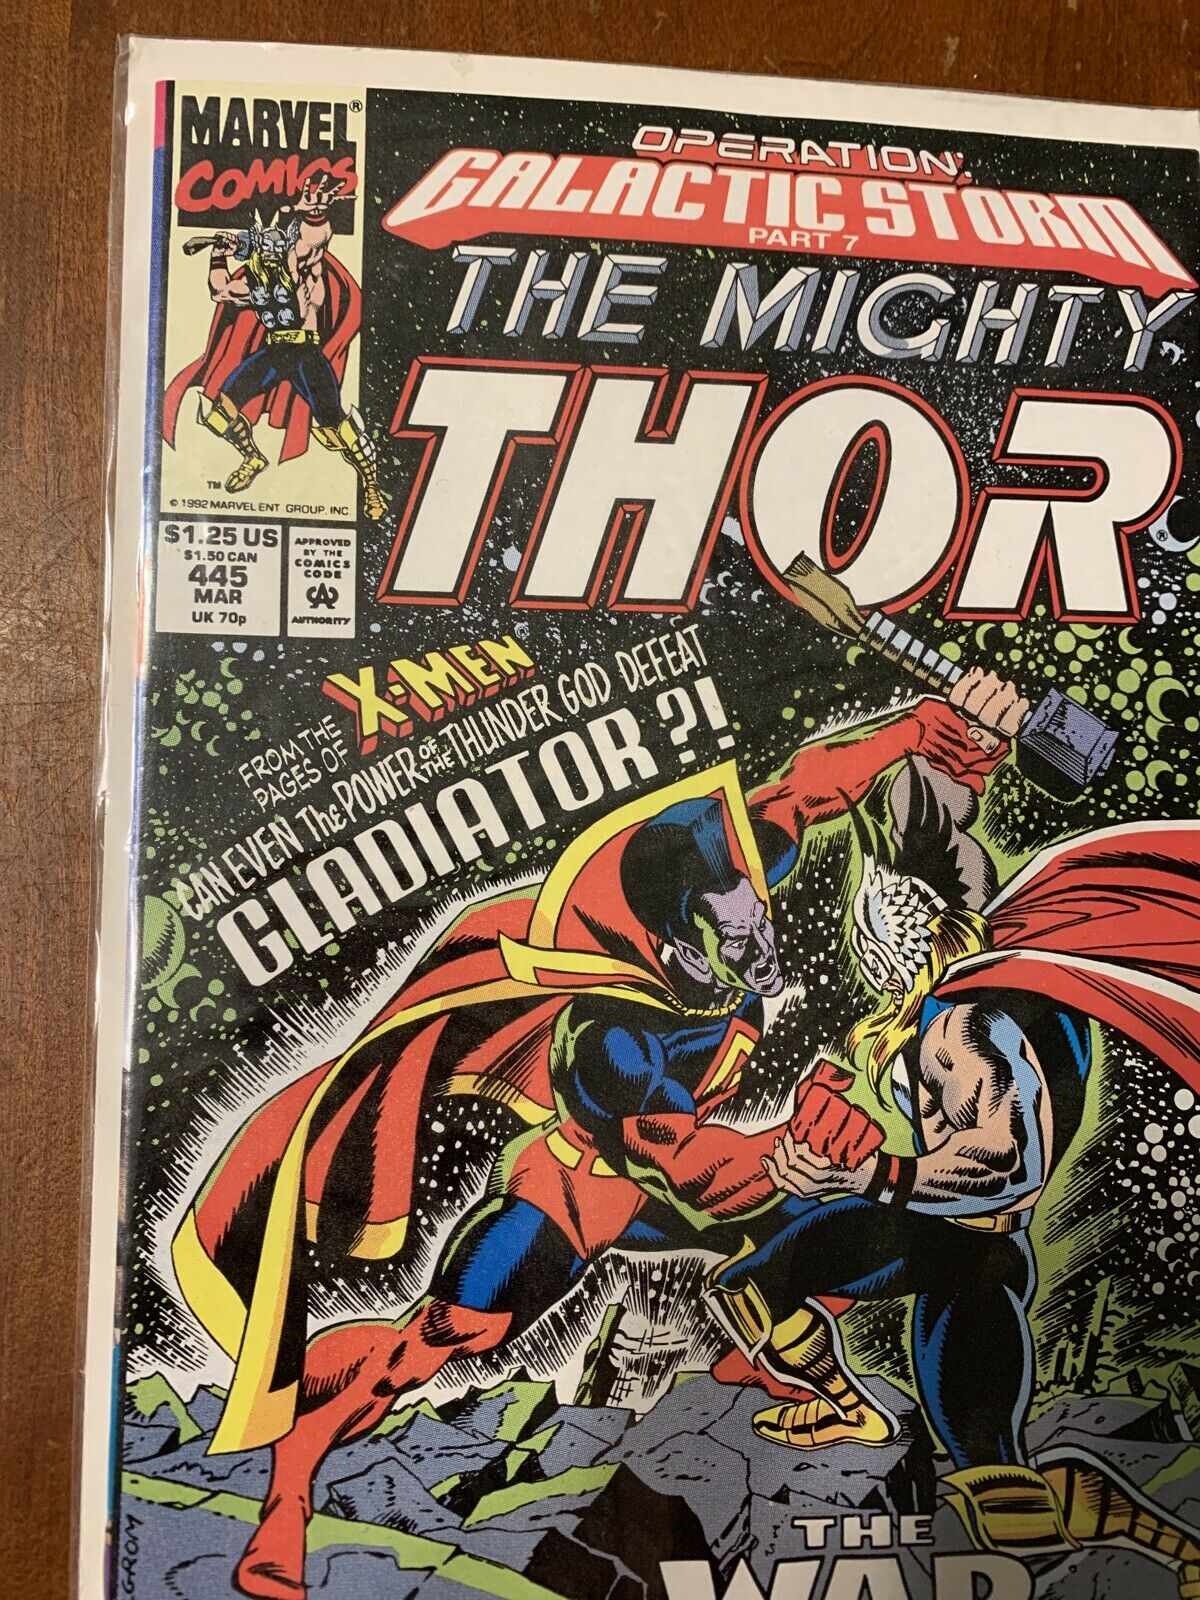 The Mighty Thor #445 March 1992 Marvel Comics